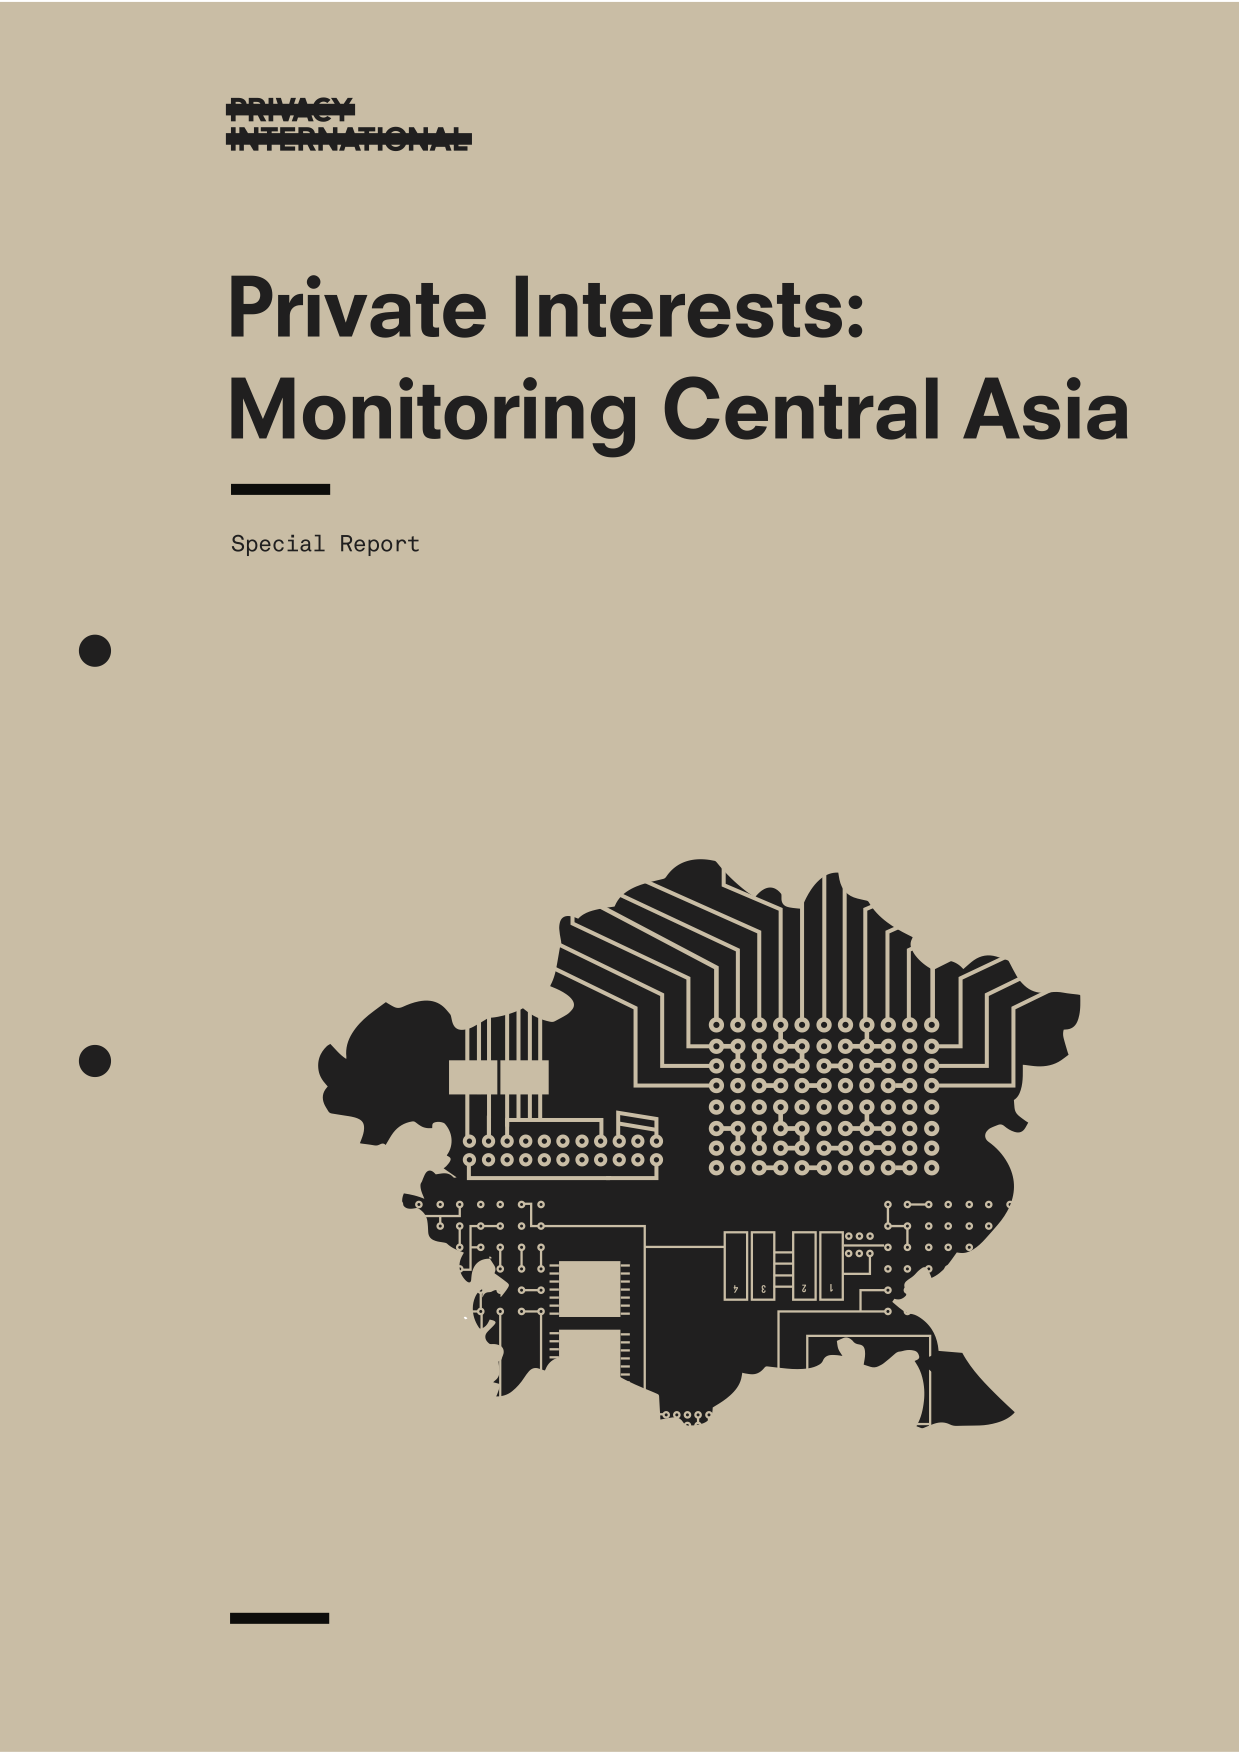 Private Interests: Monitoring Central Asia